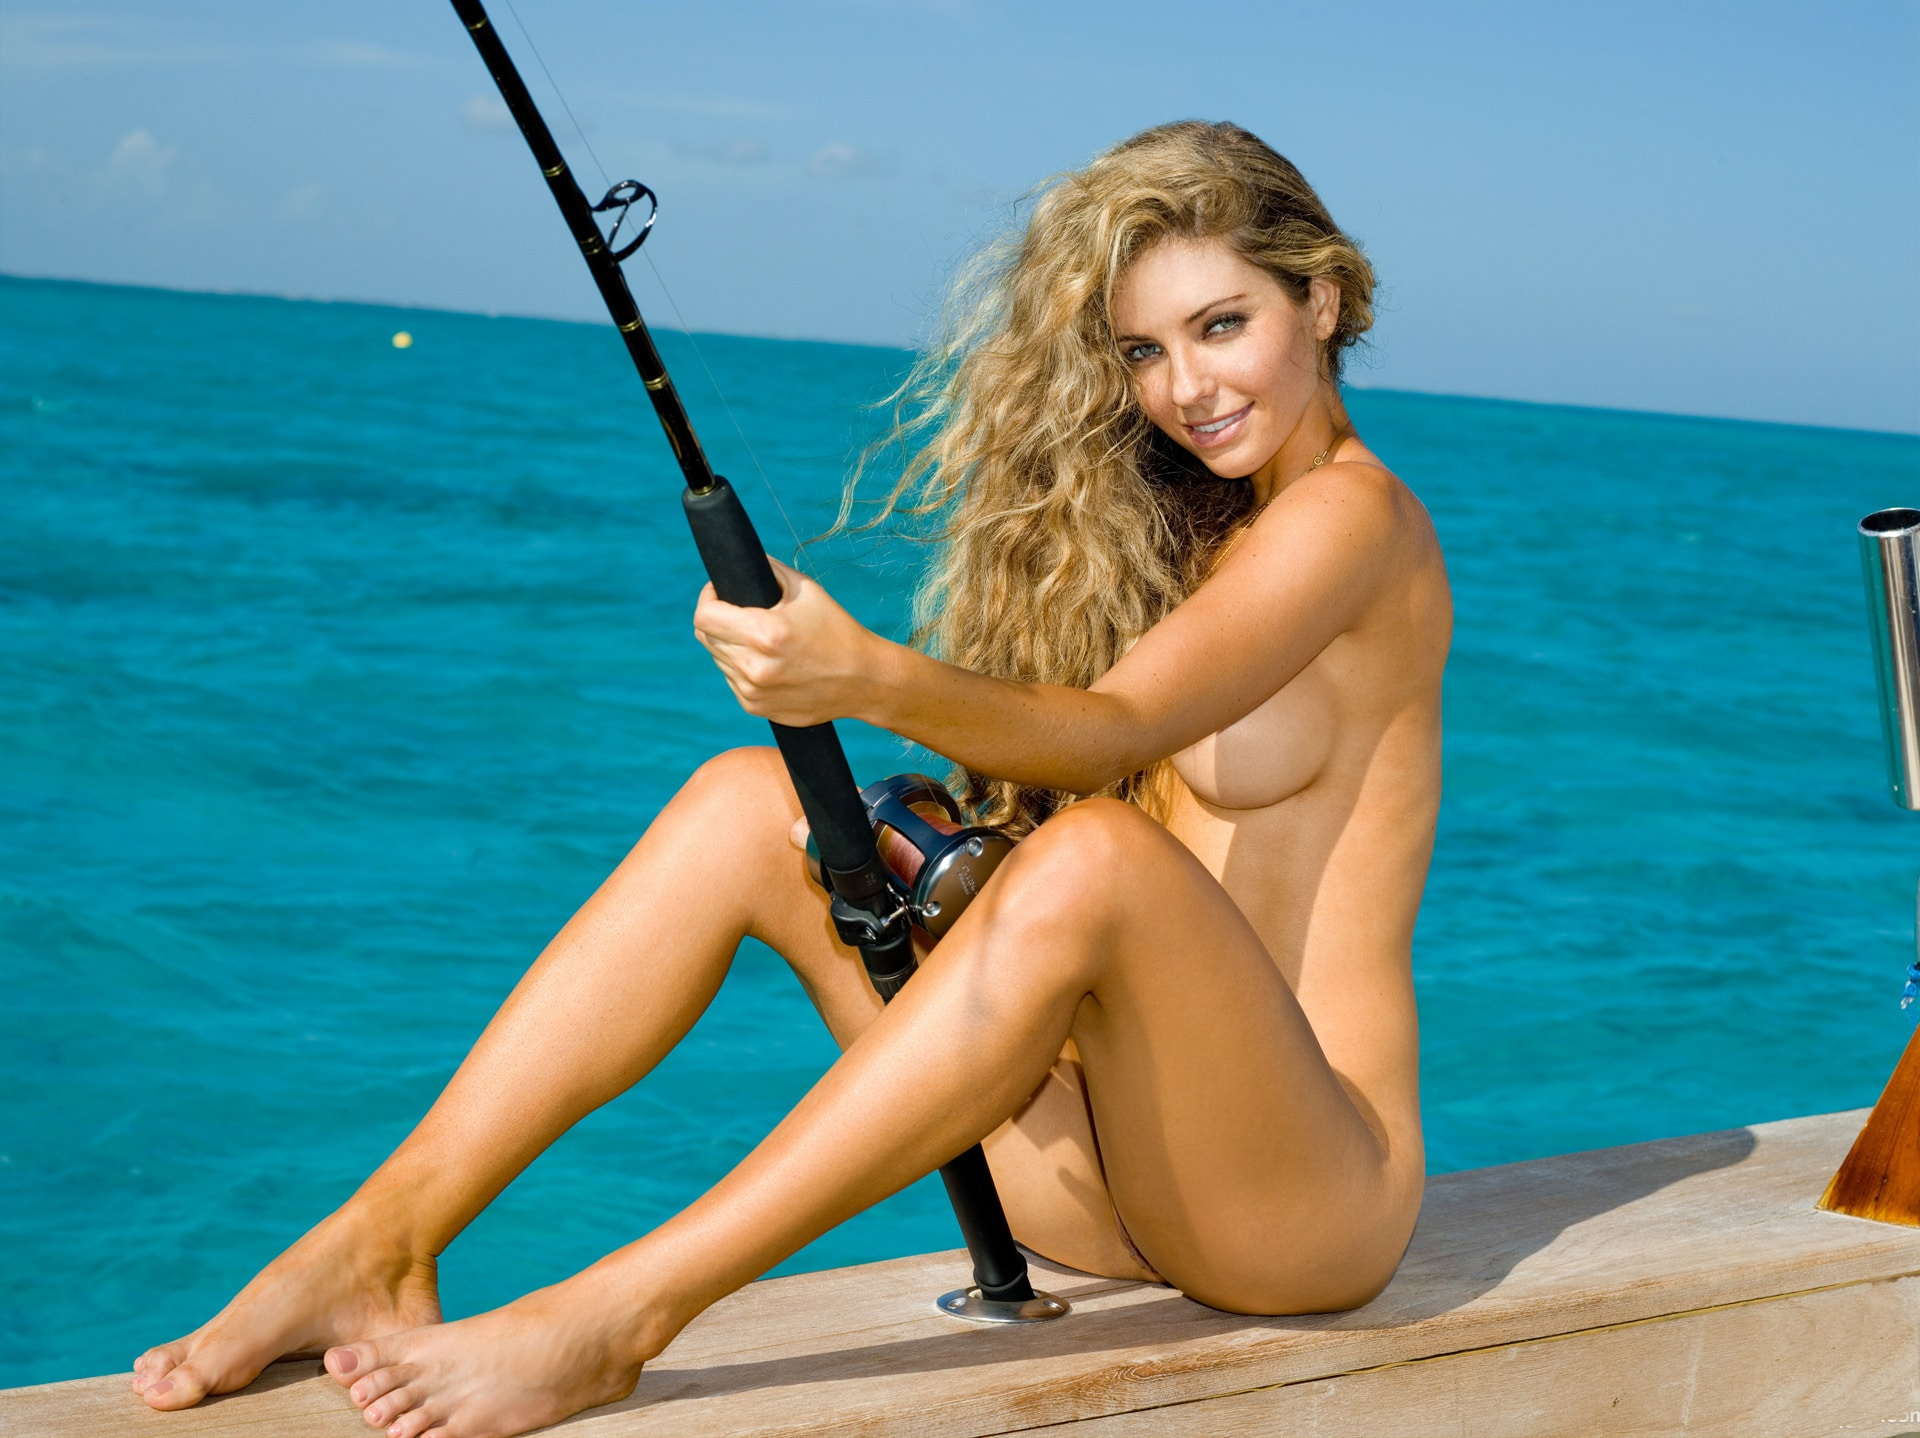 Hot nude girl fishing